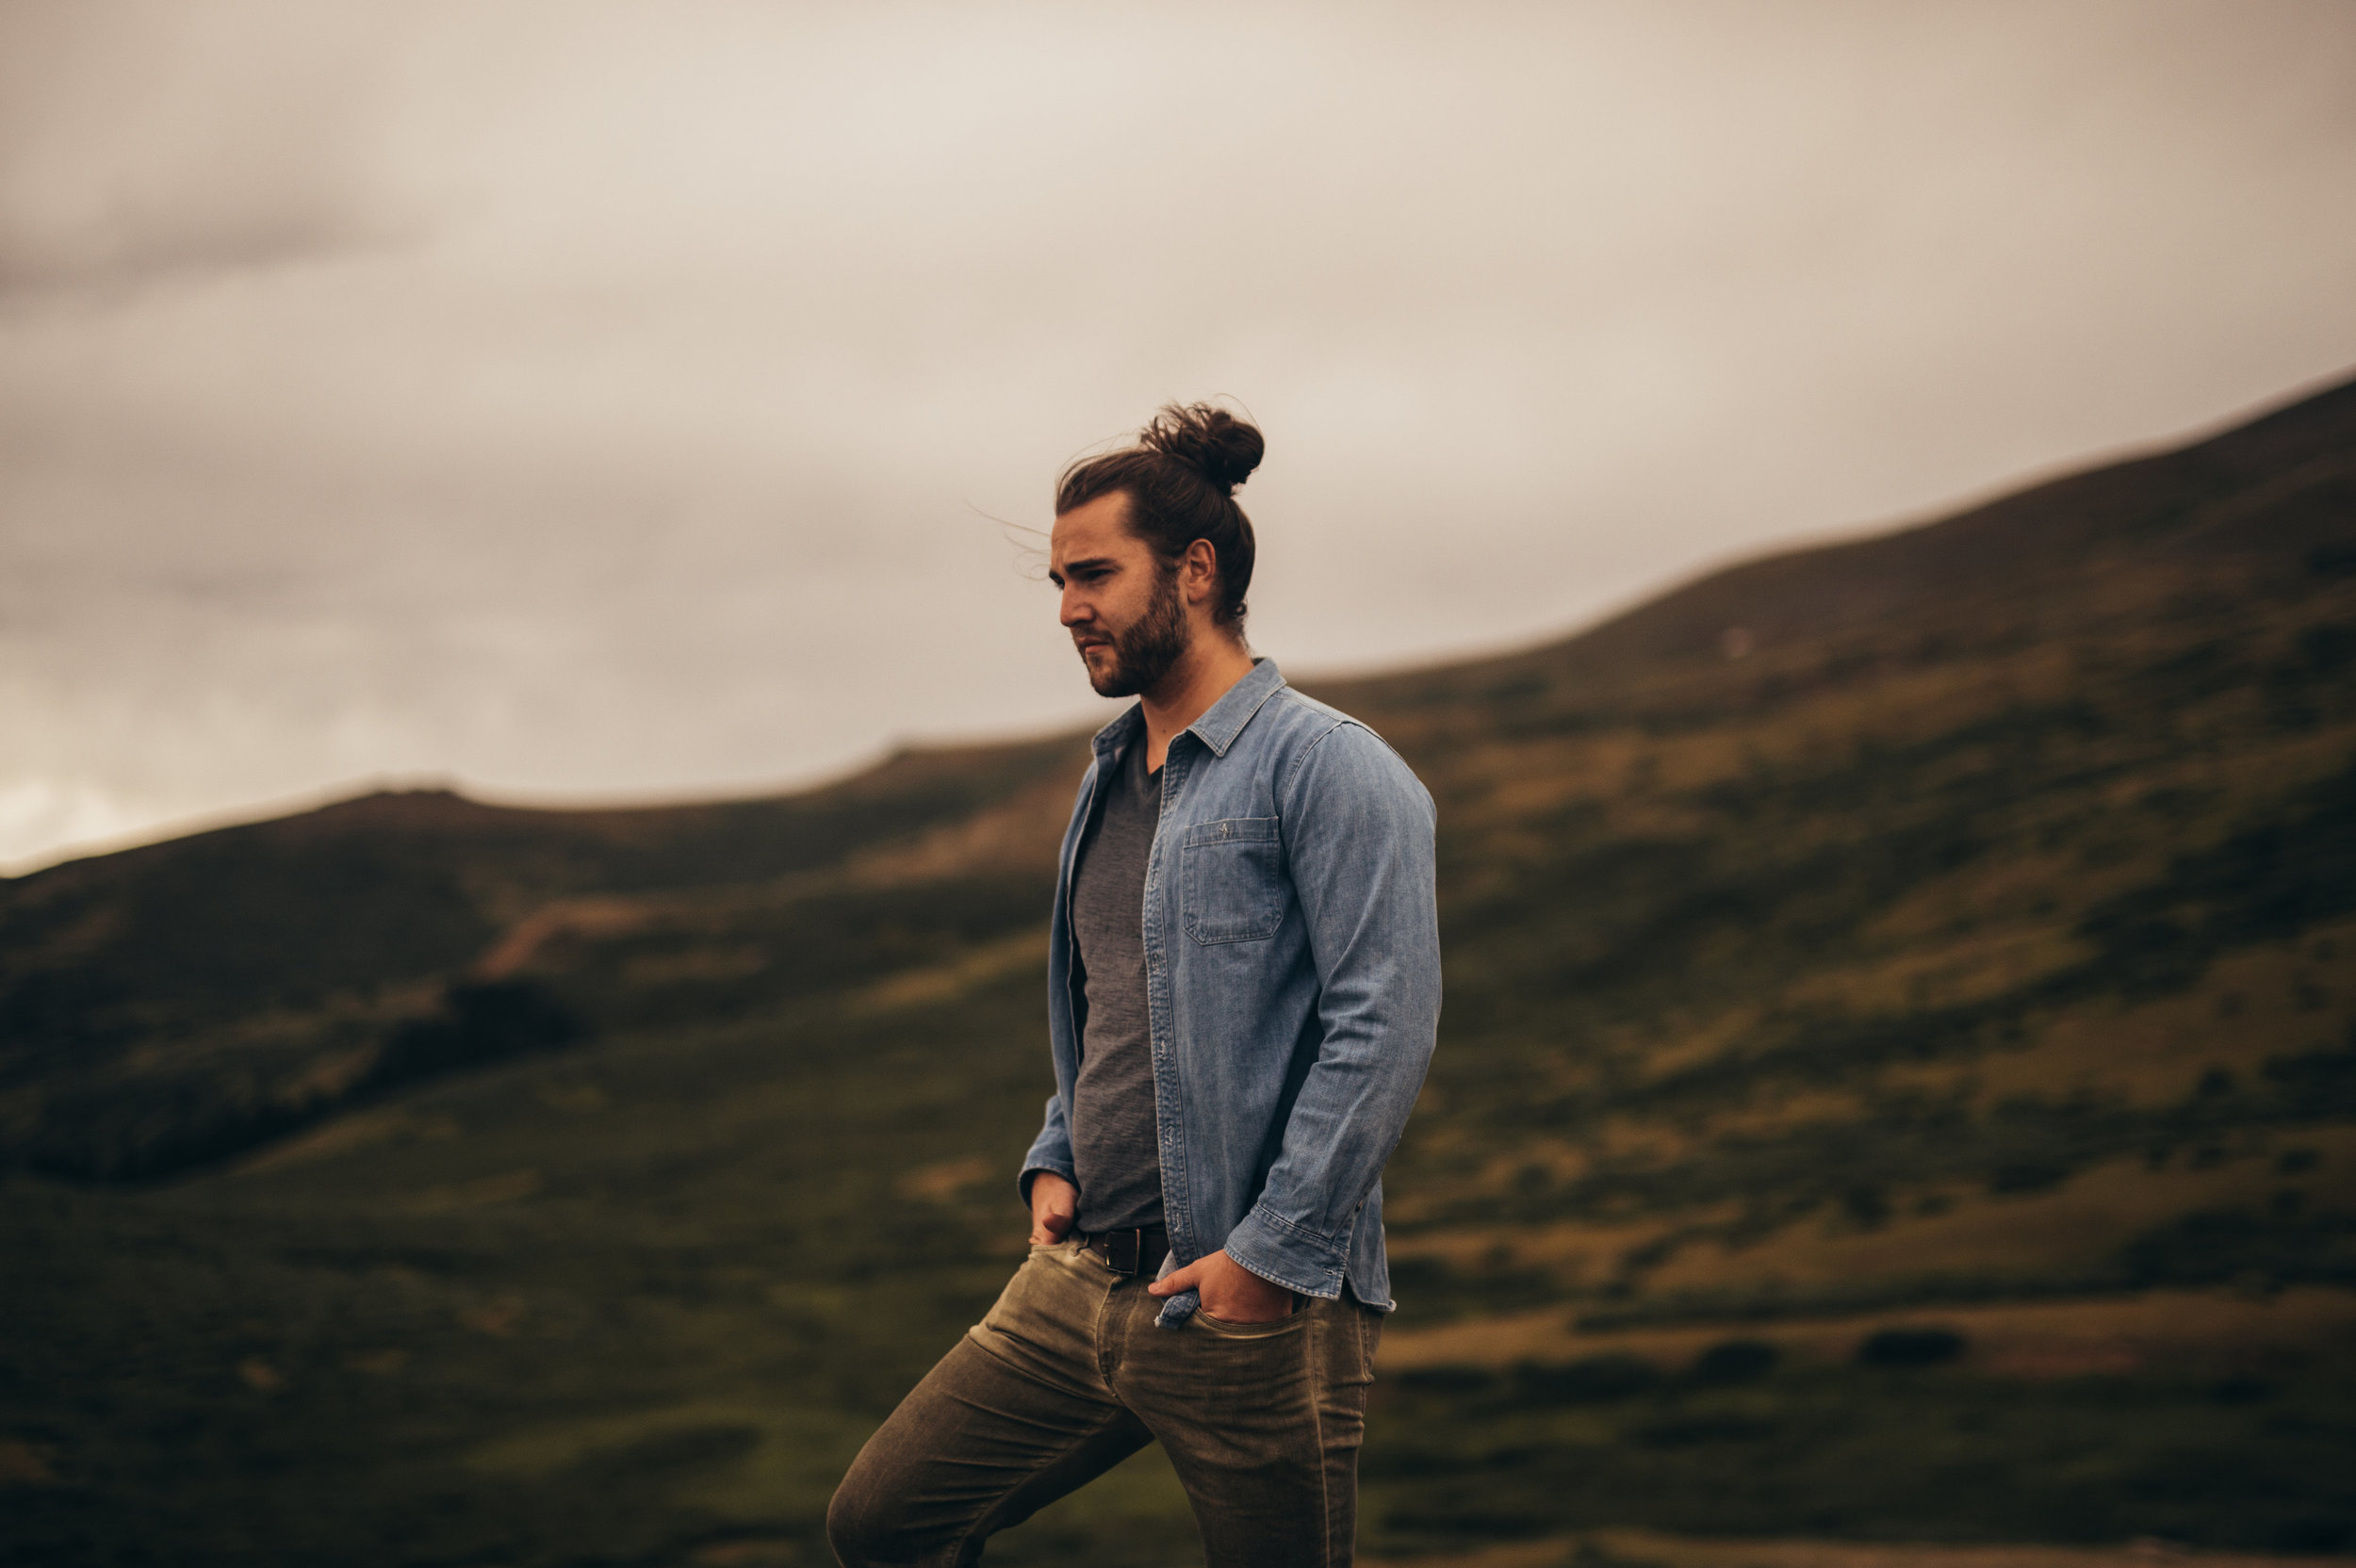 Man standing on rock in mountain